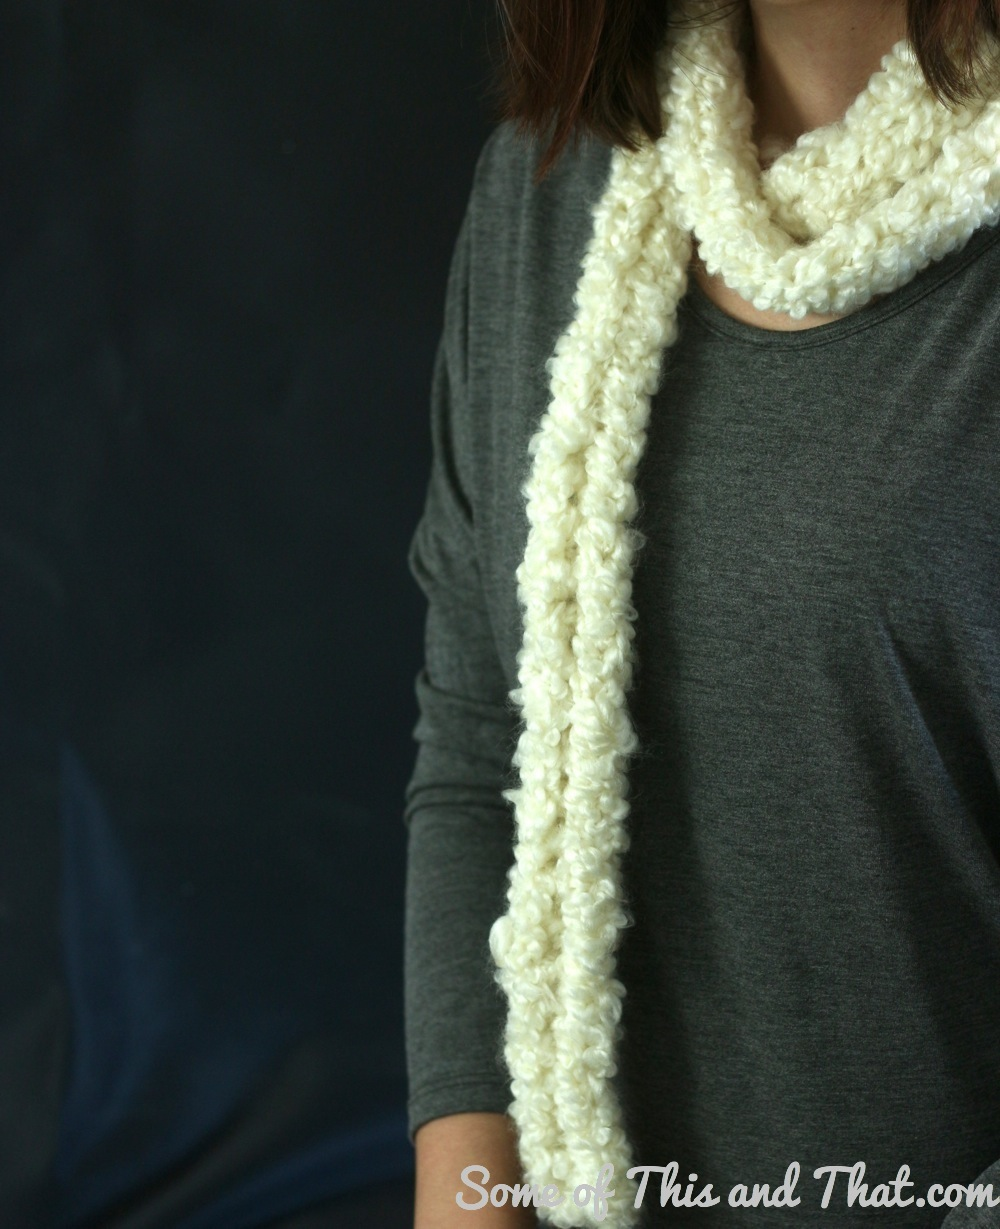 Want to learn how to knit but can't seem to get it right? Learn how to finger knit! It only takes some yarn and your good ol' fingers to finger knit a scarf! Perfect for the cold months and make a great homemade gift for the holidays!